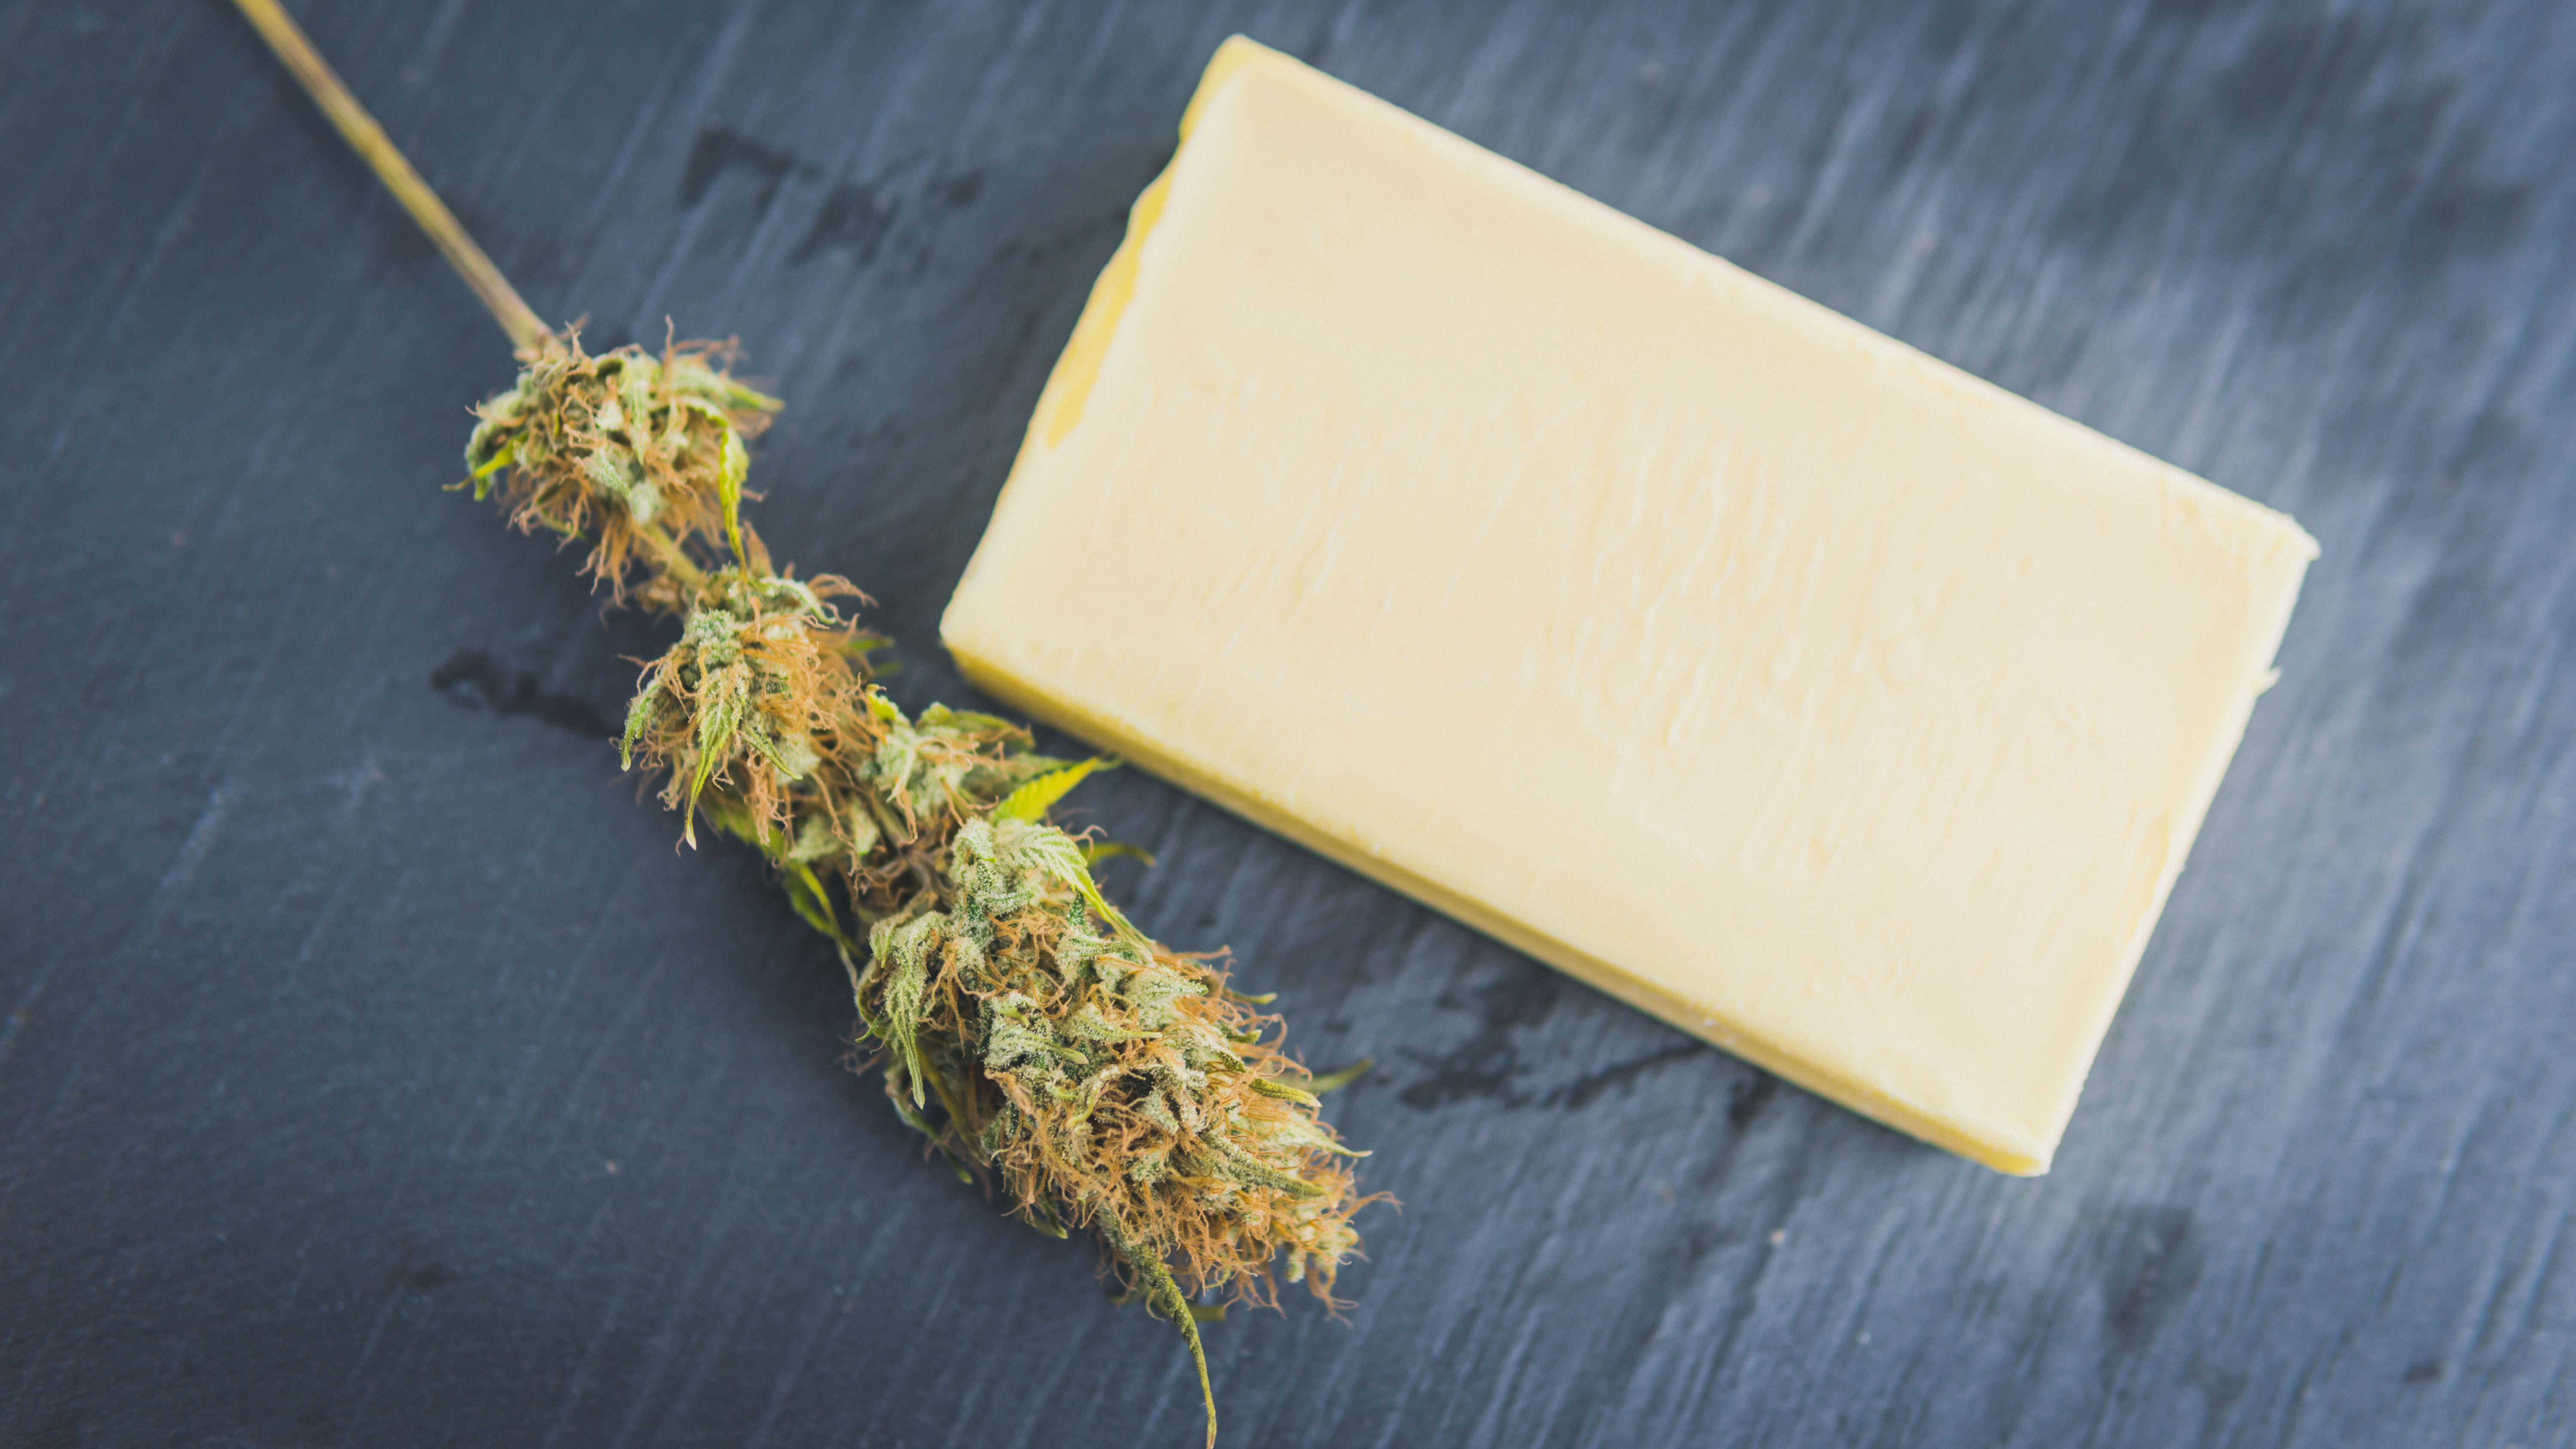 What's the Deal with Cannabis Butter?